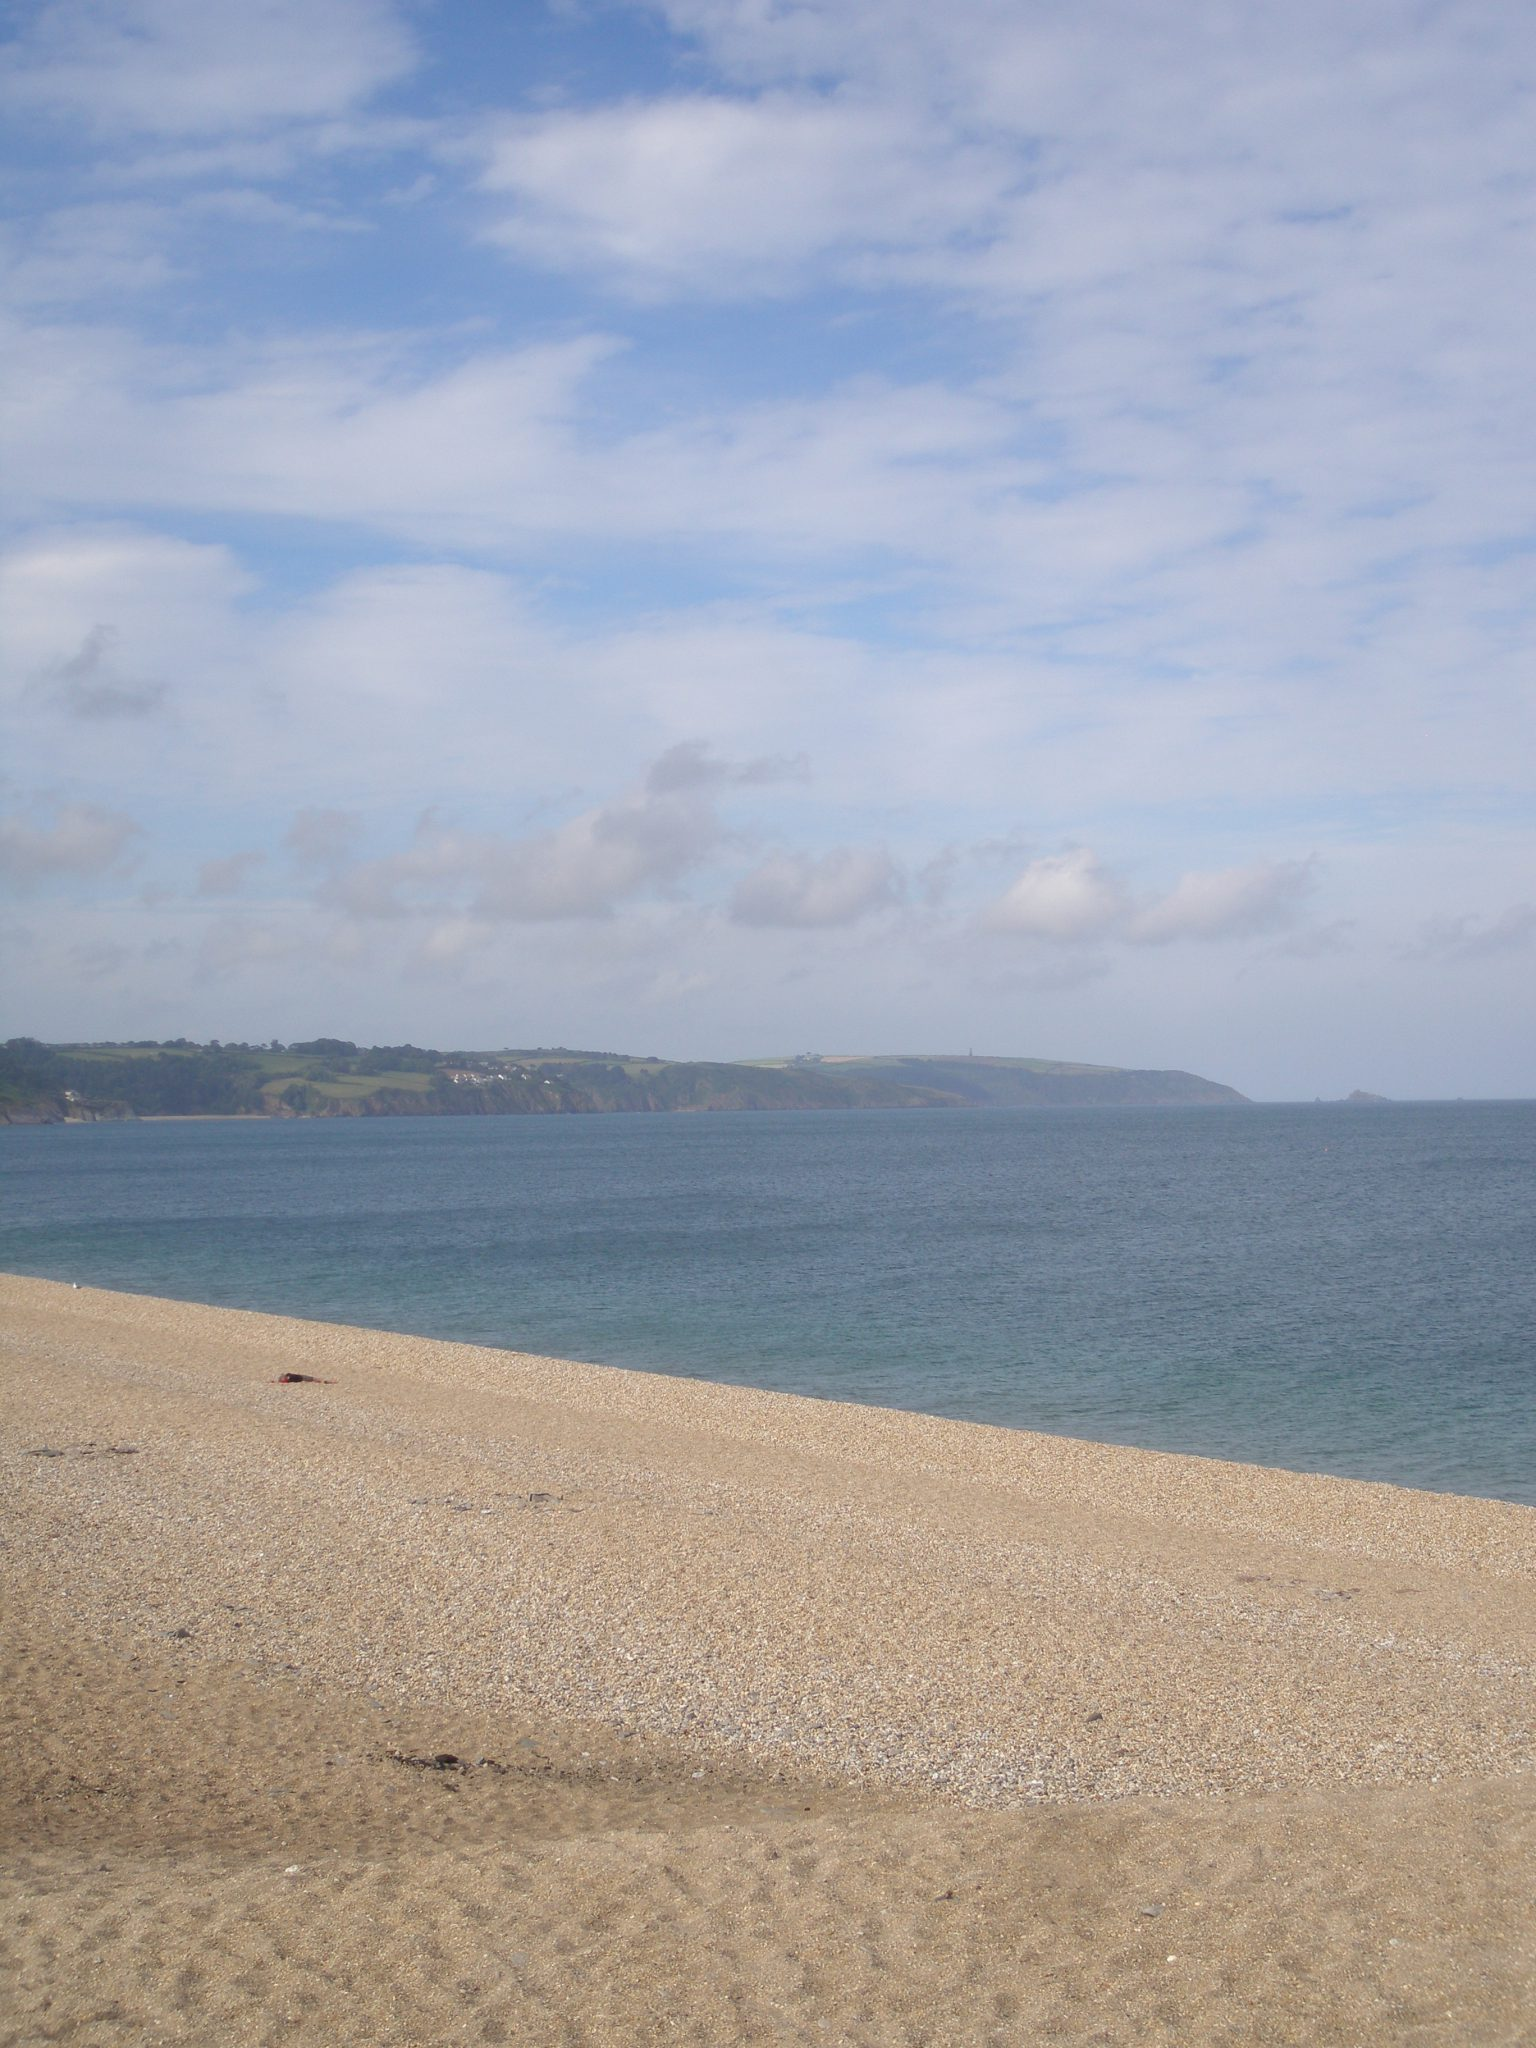 It's peaceful now, at Slapton Sands.